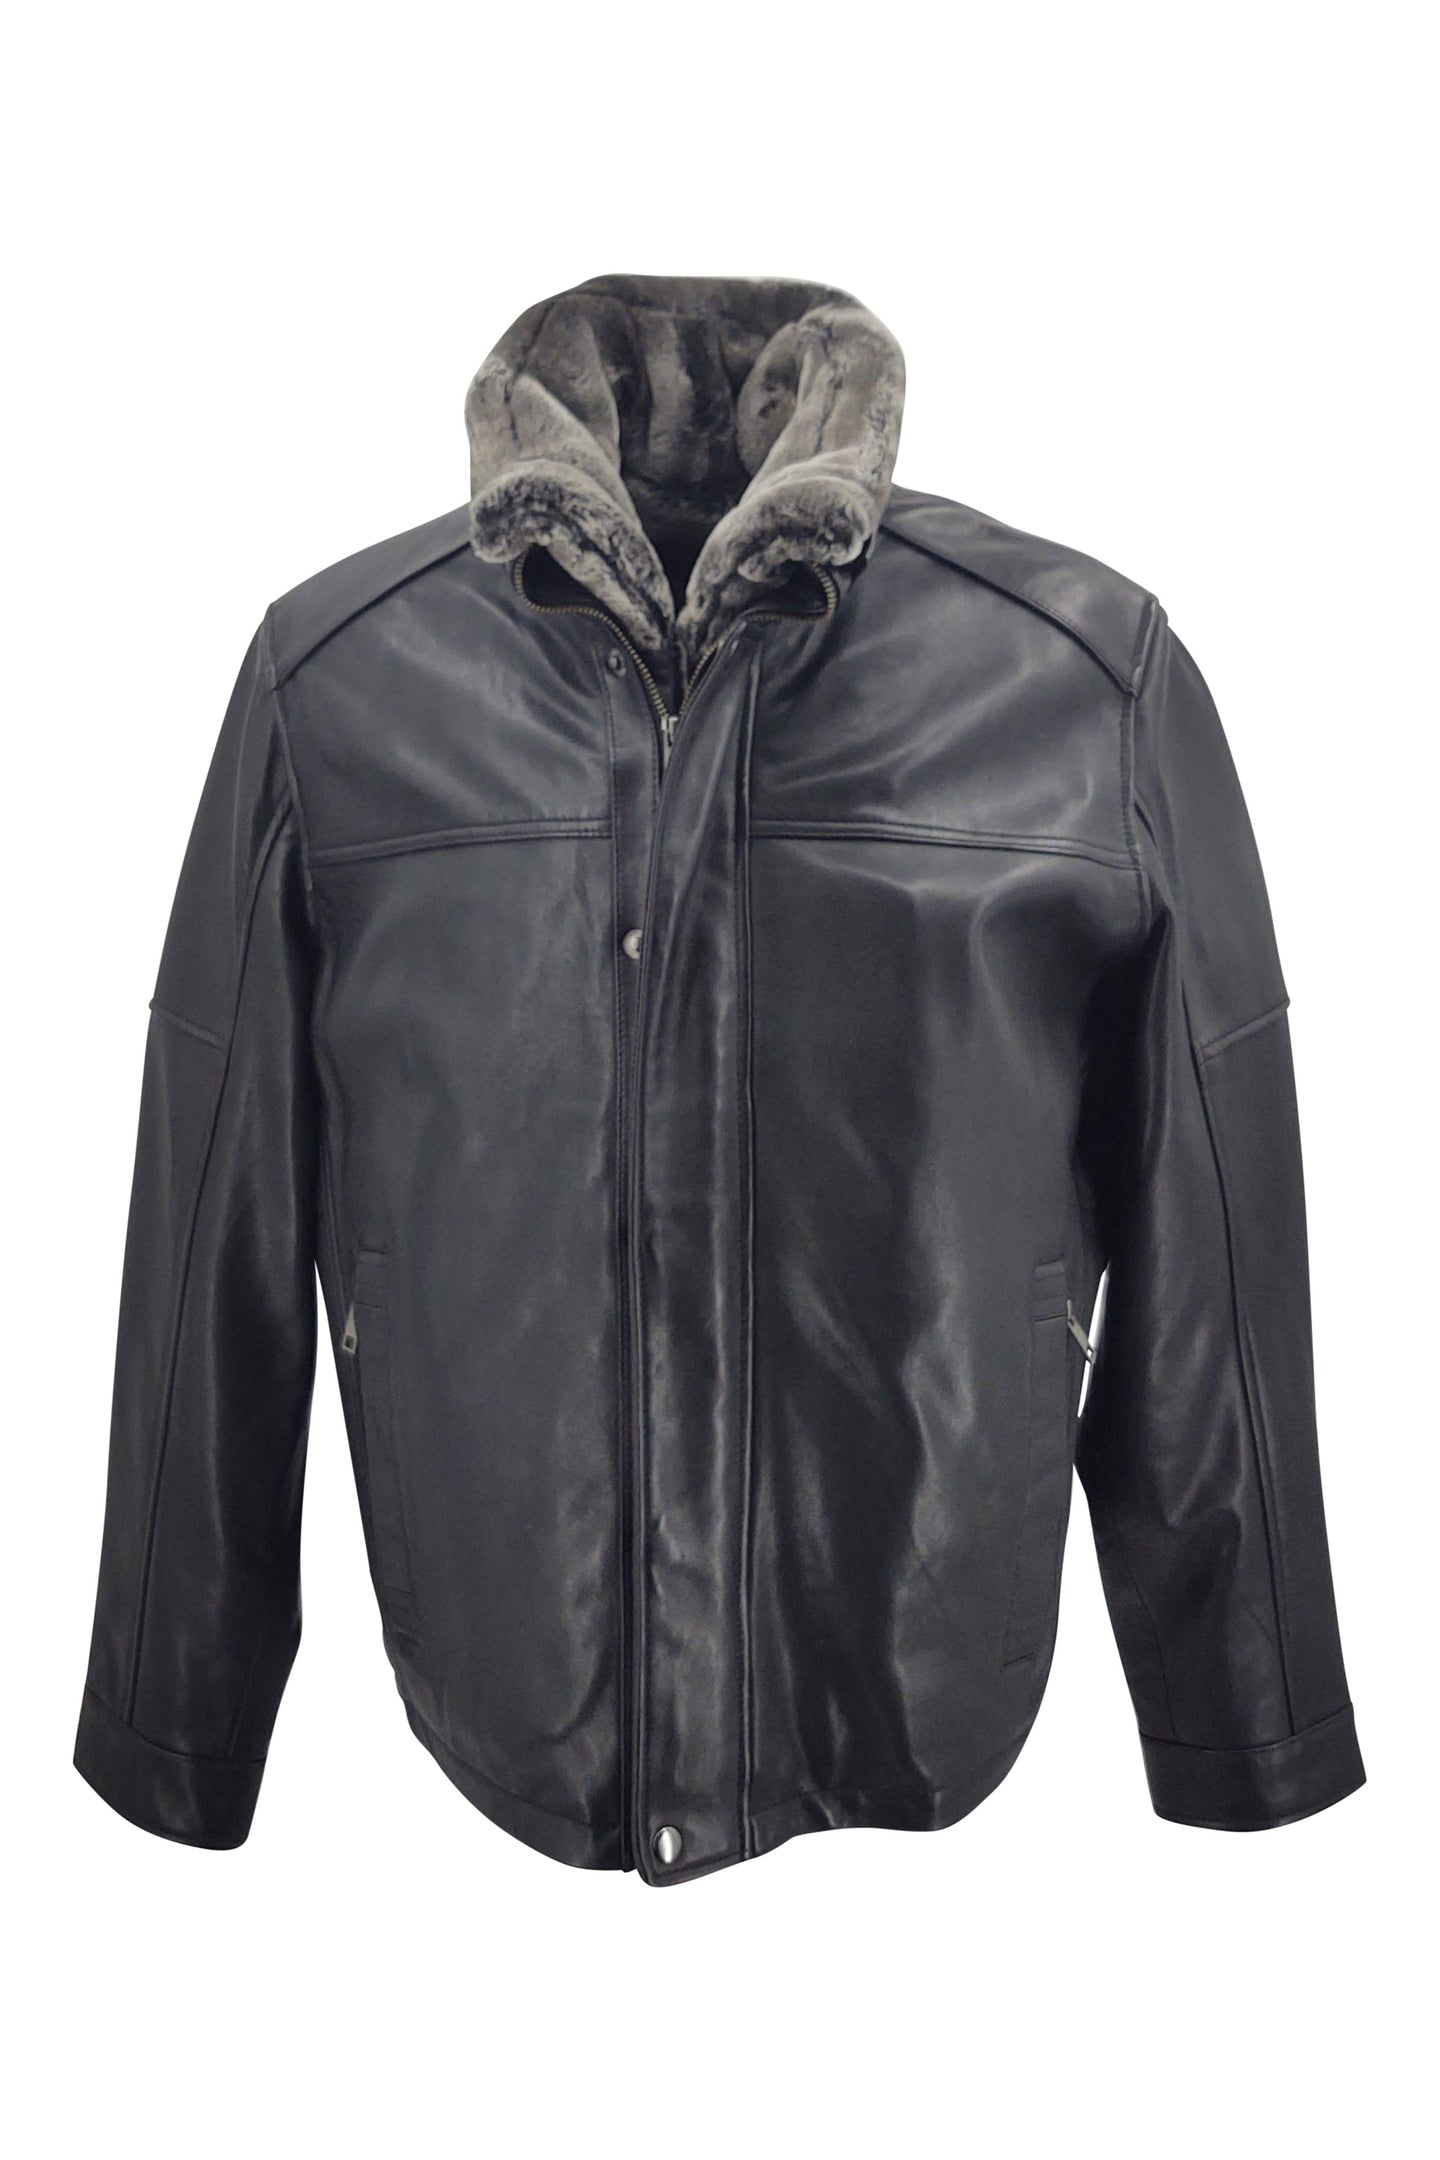 Marco - Lamb Leather - Man - Black | STAMPE PELS